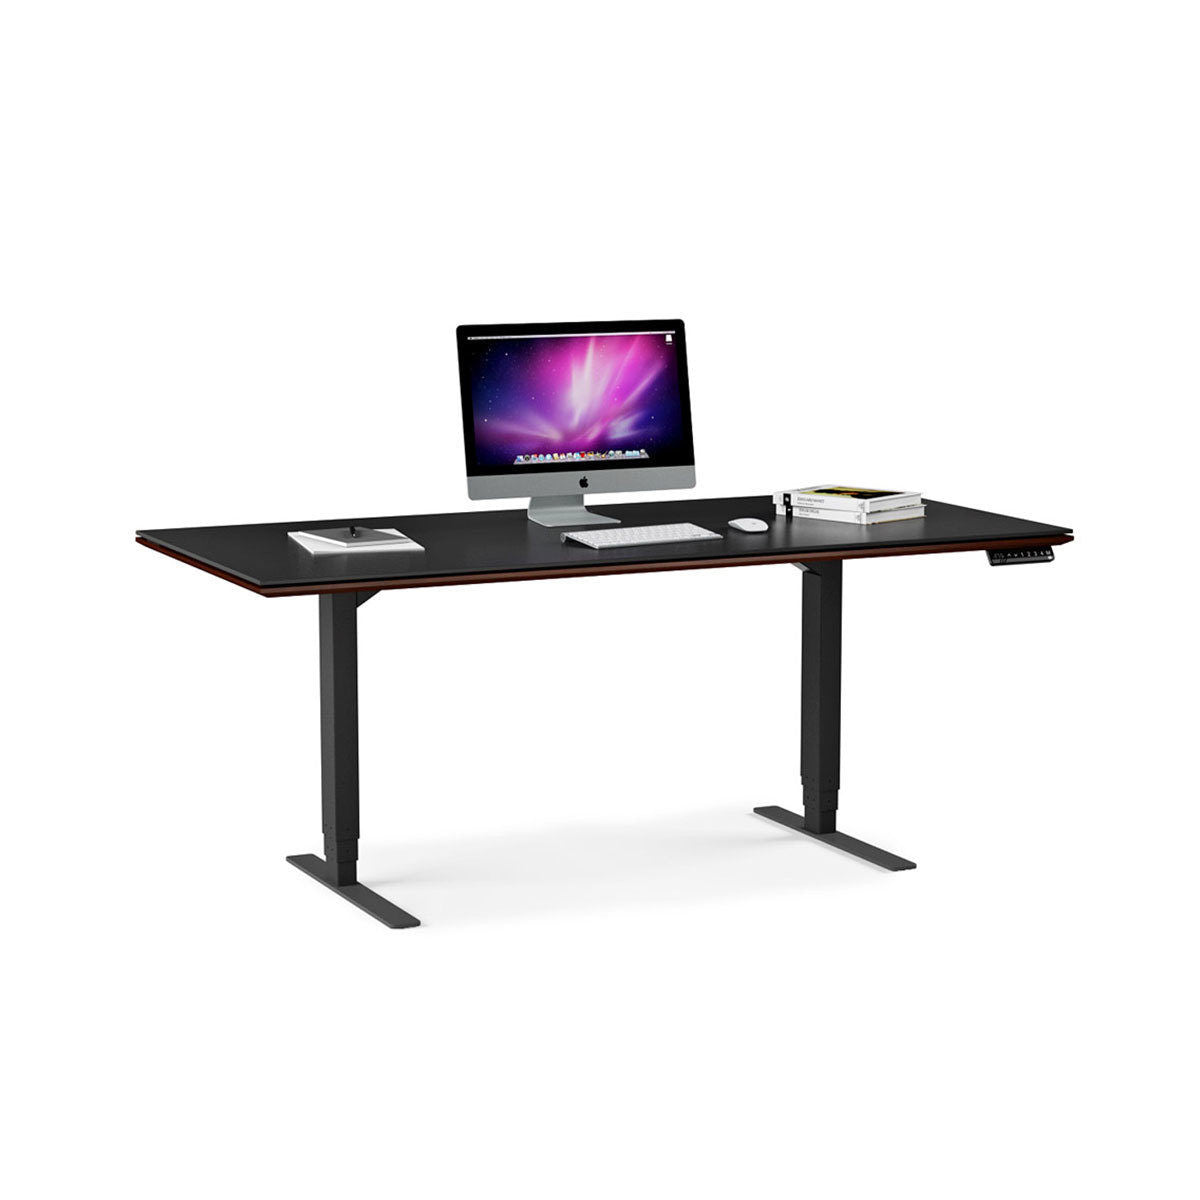 Sequel 6052 Lift Standing Desk - 66x30